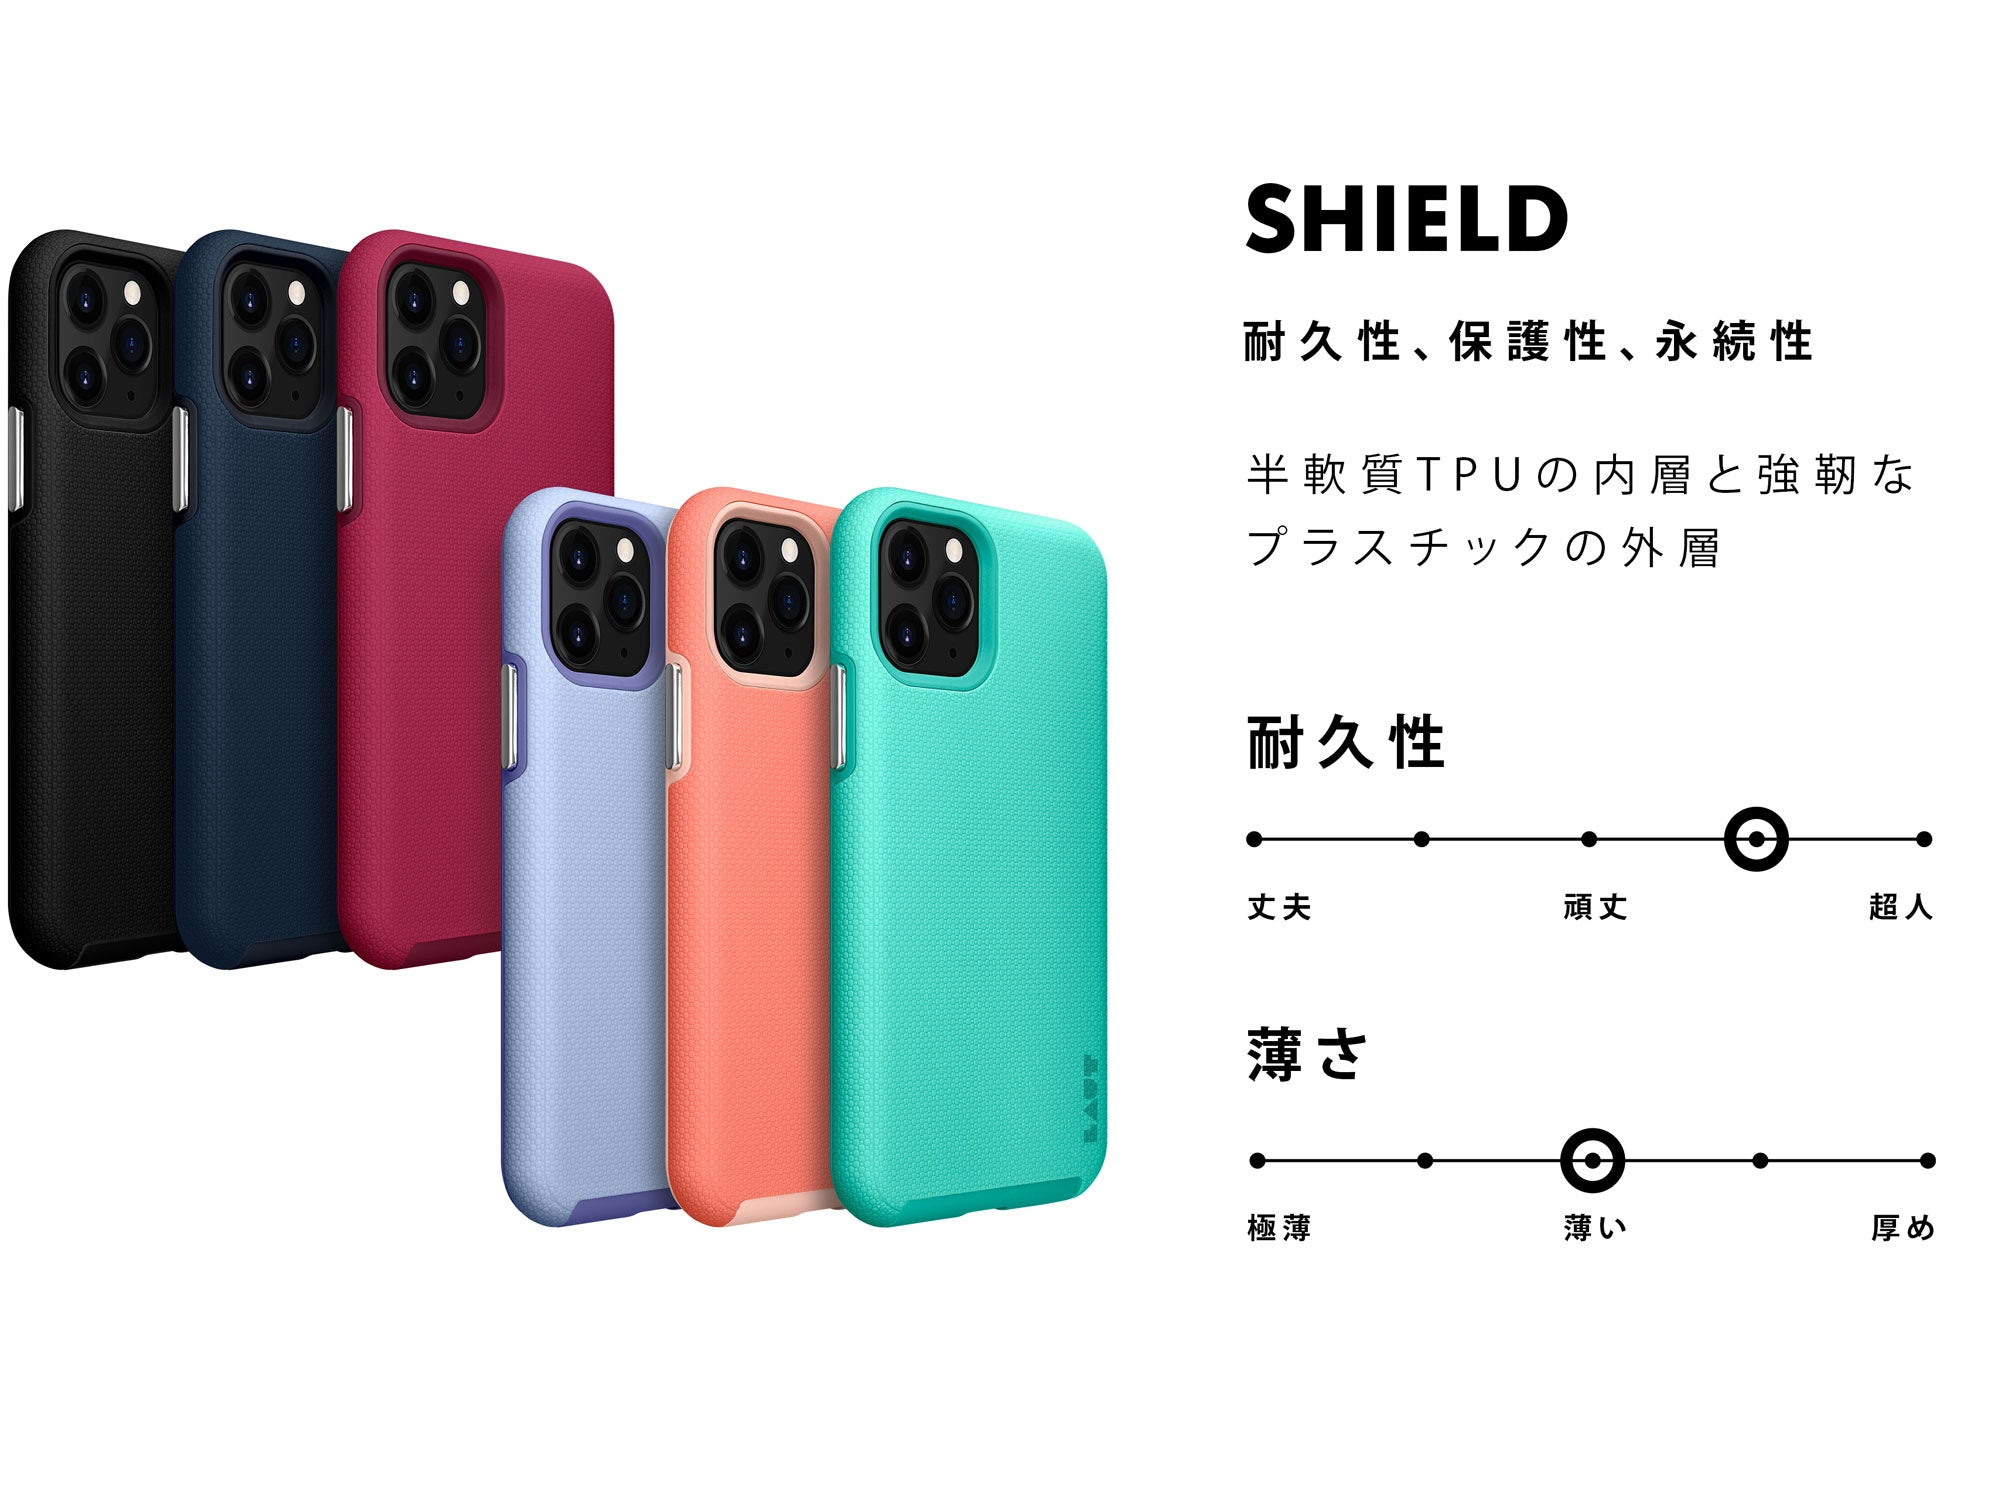 SHIELD for iPhone 11 series